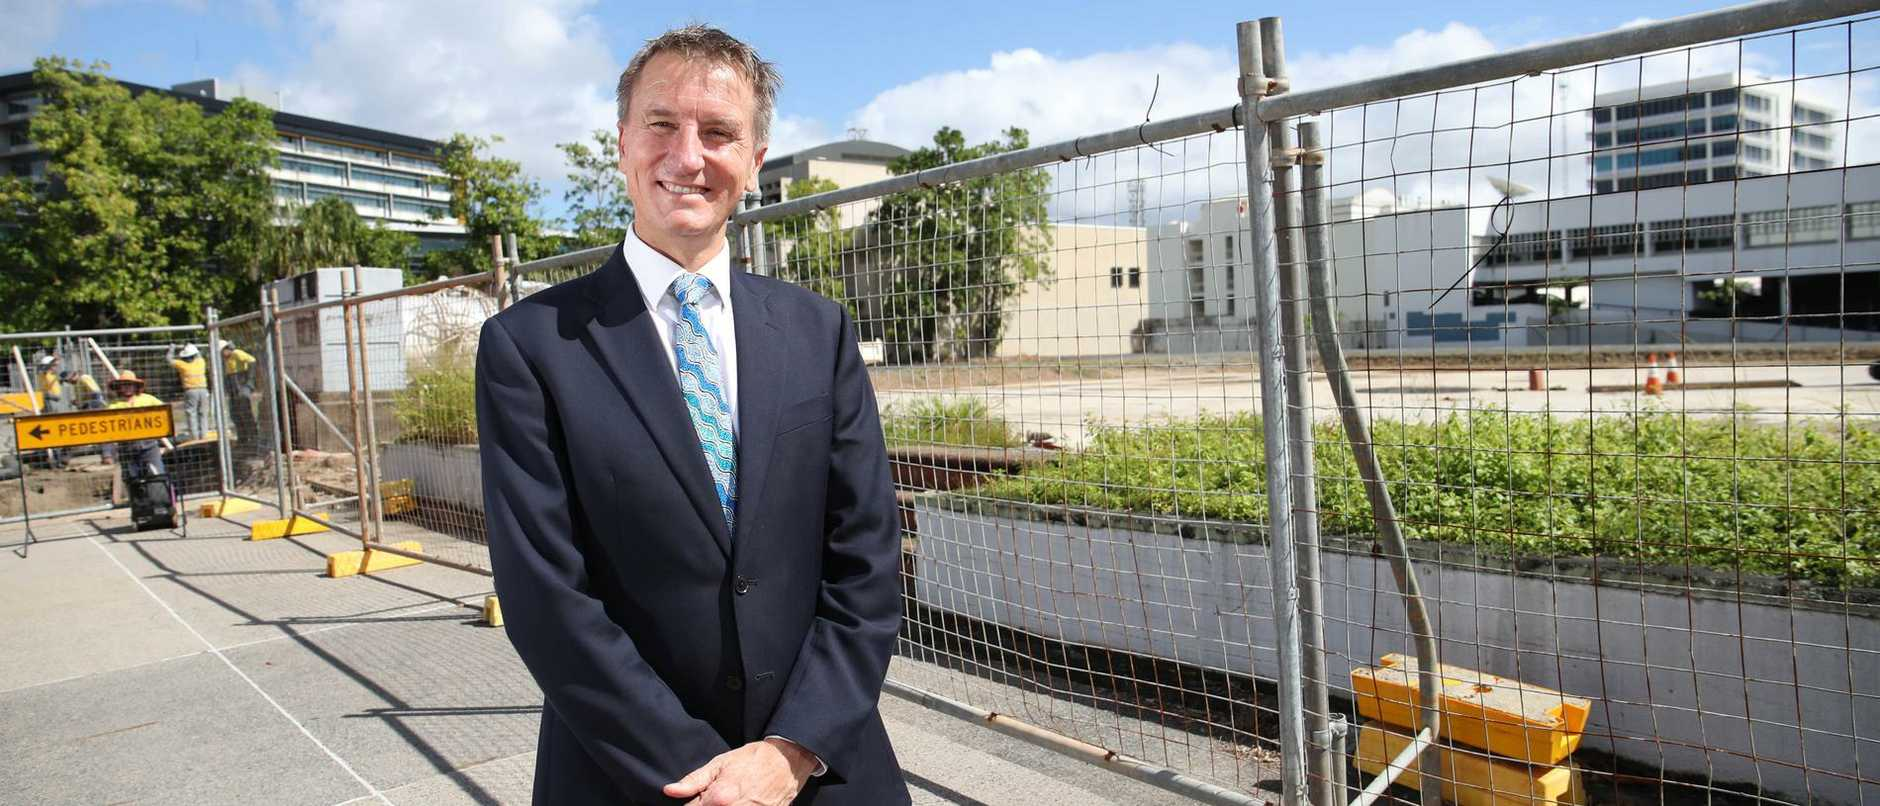 CQUniversity has singled out a prime corner block for a new campus and is pushing for $50 million in Federal Government funding.